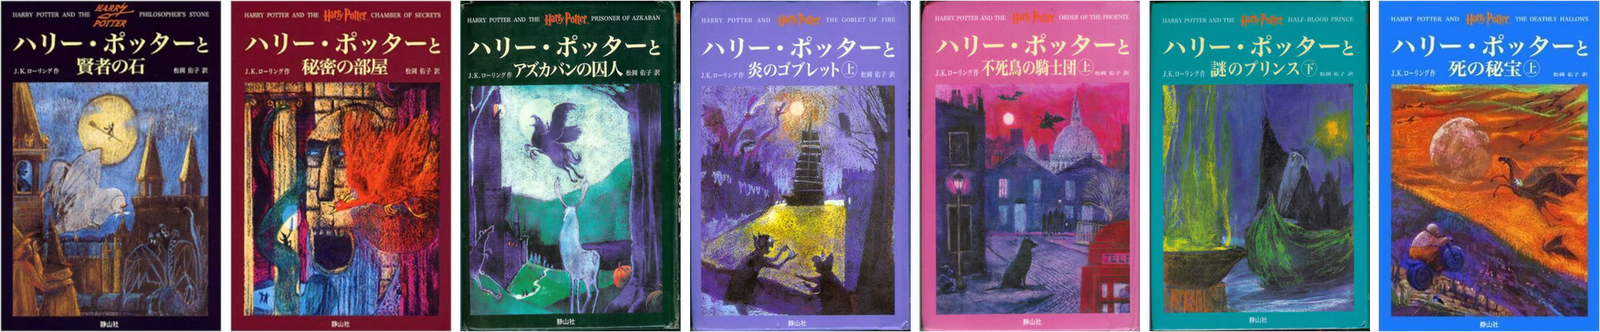 Japanese School Book Cover : Linto experiment harry potter book cover from around the